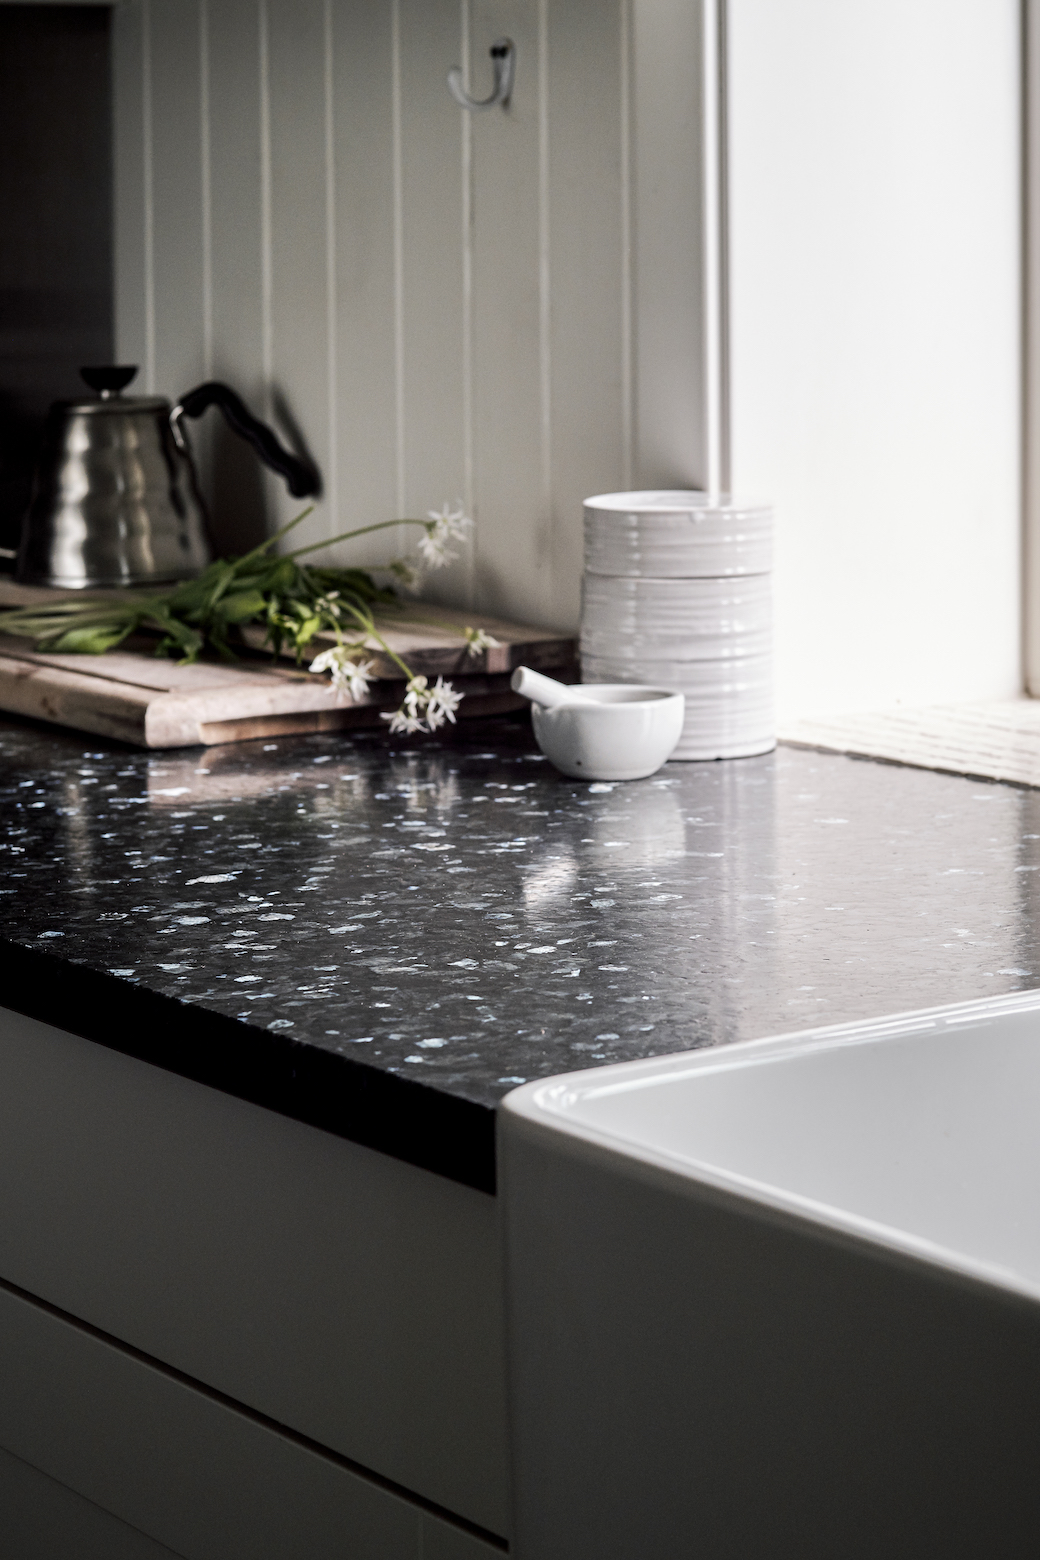 Lundhs Emerald kitchen worktops